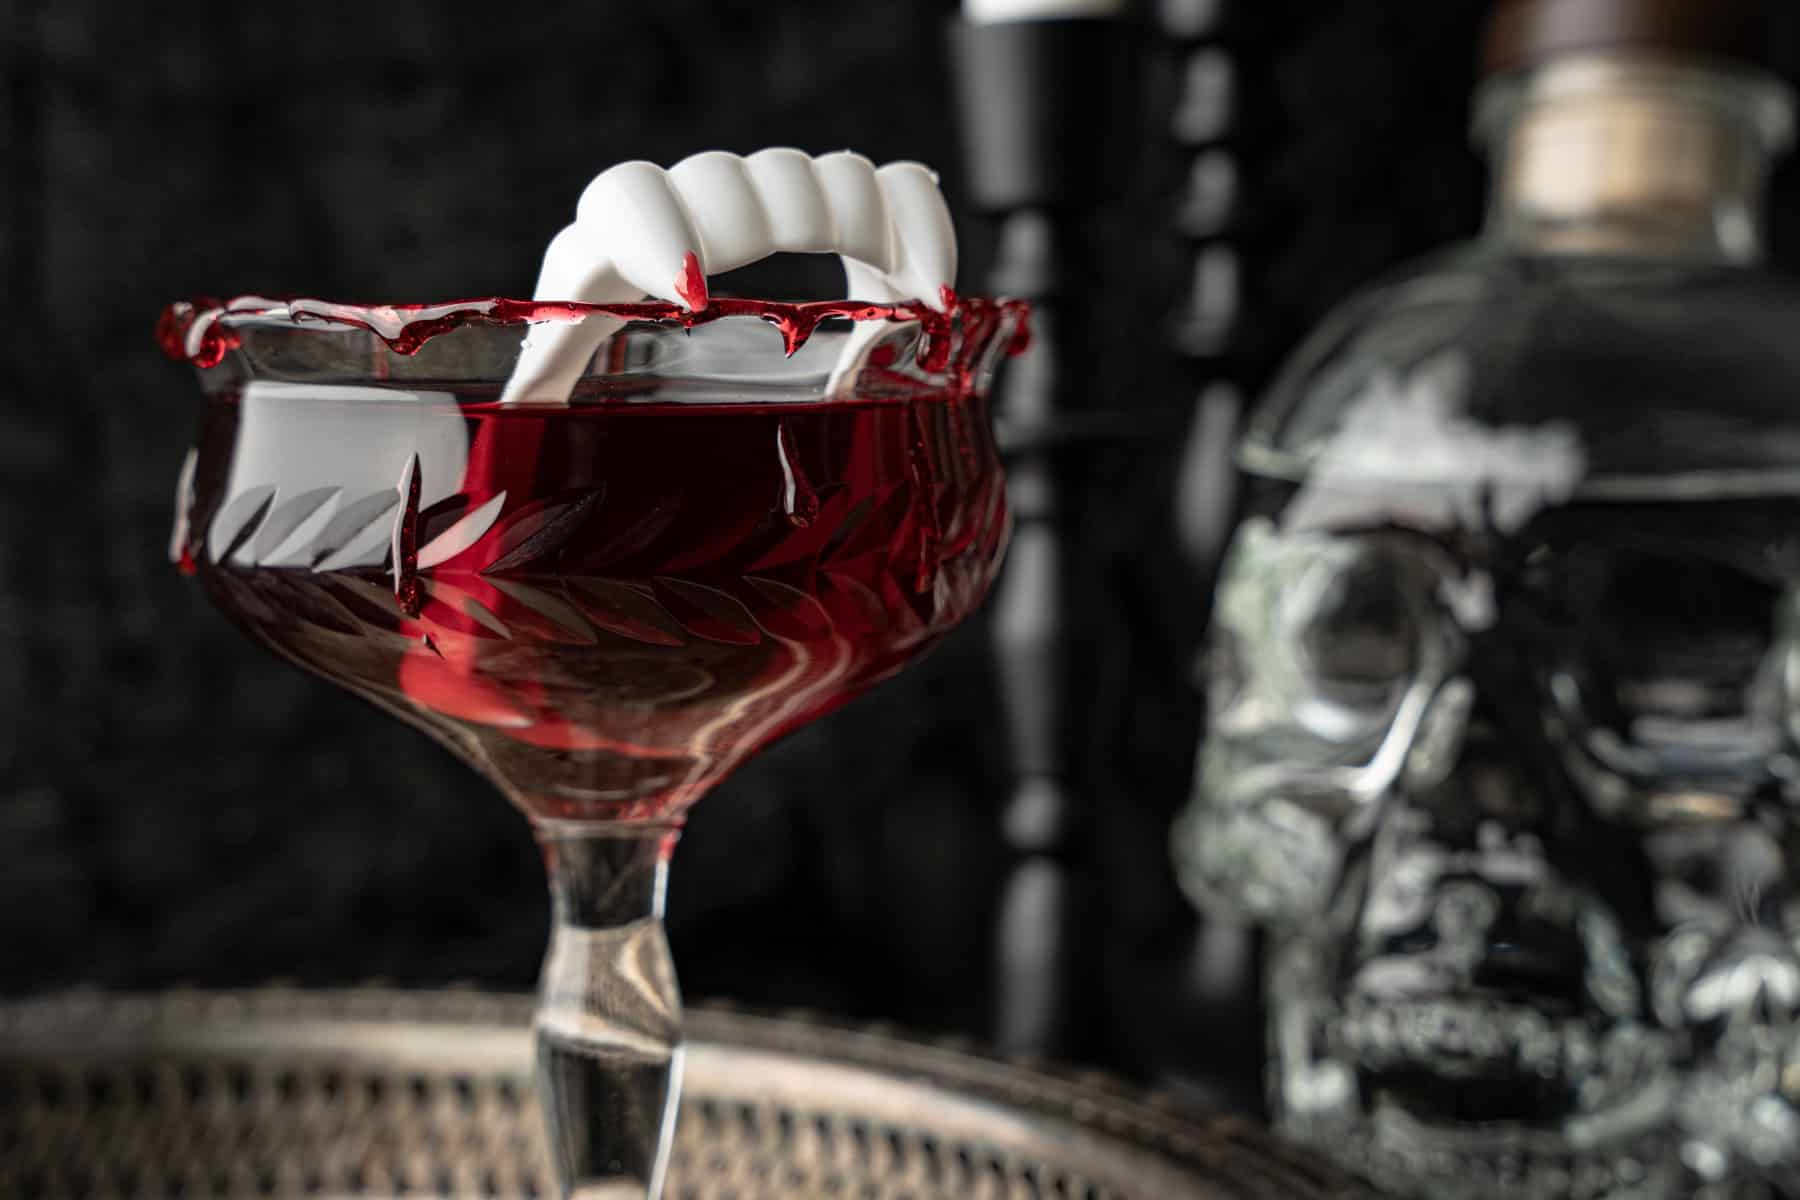 Horizontal shot of a Dracula's Kiss cocktail with vampire teeth inside the glass